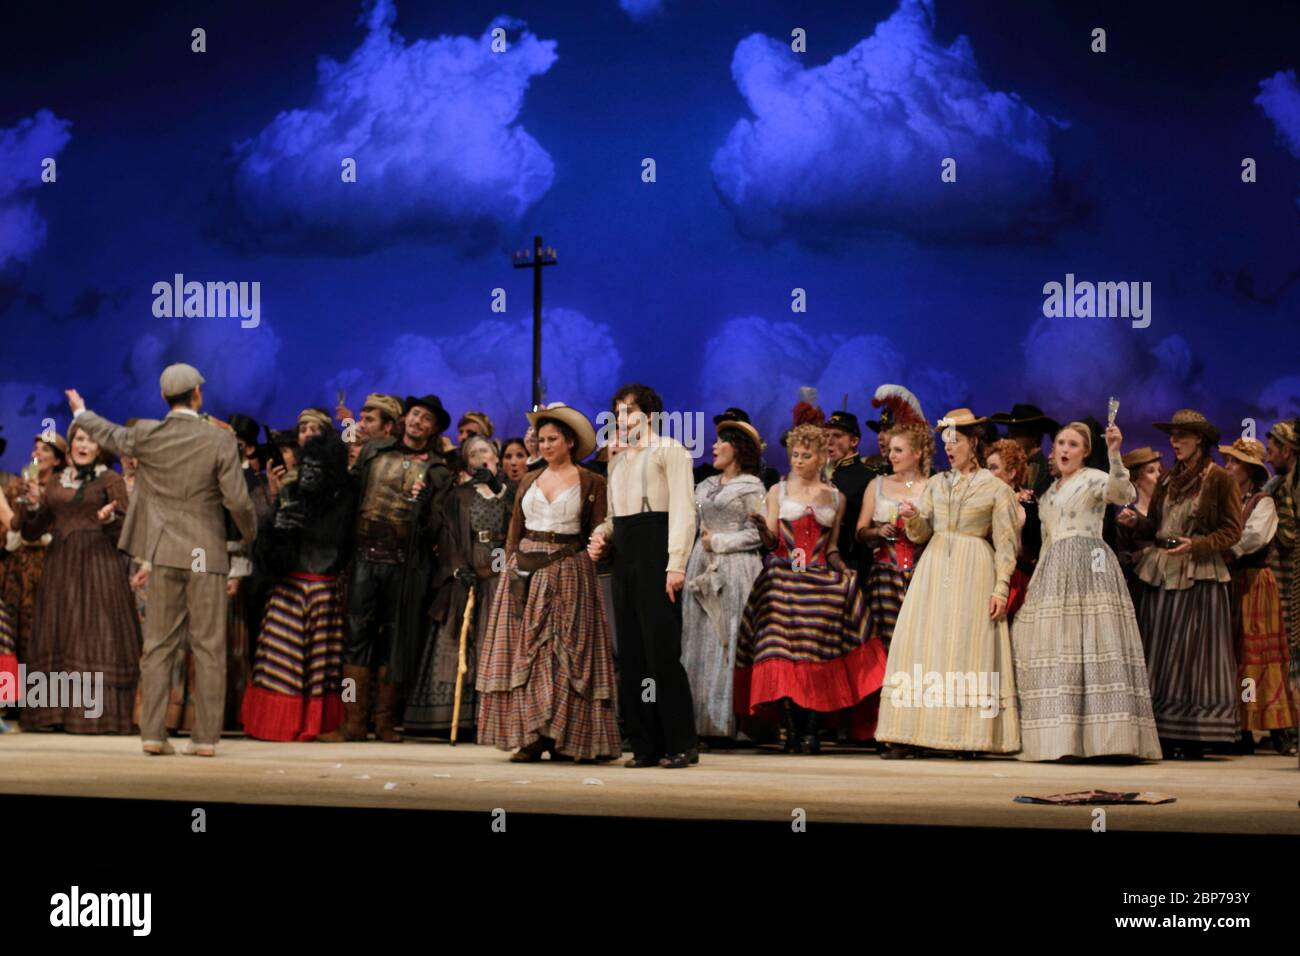 Page 2 Gaetano Donizetti High Resolution Stock Photography And Images Alamy